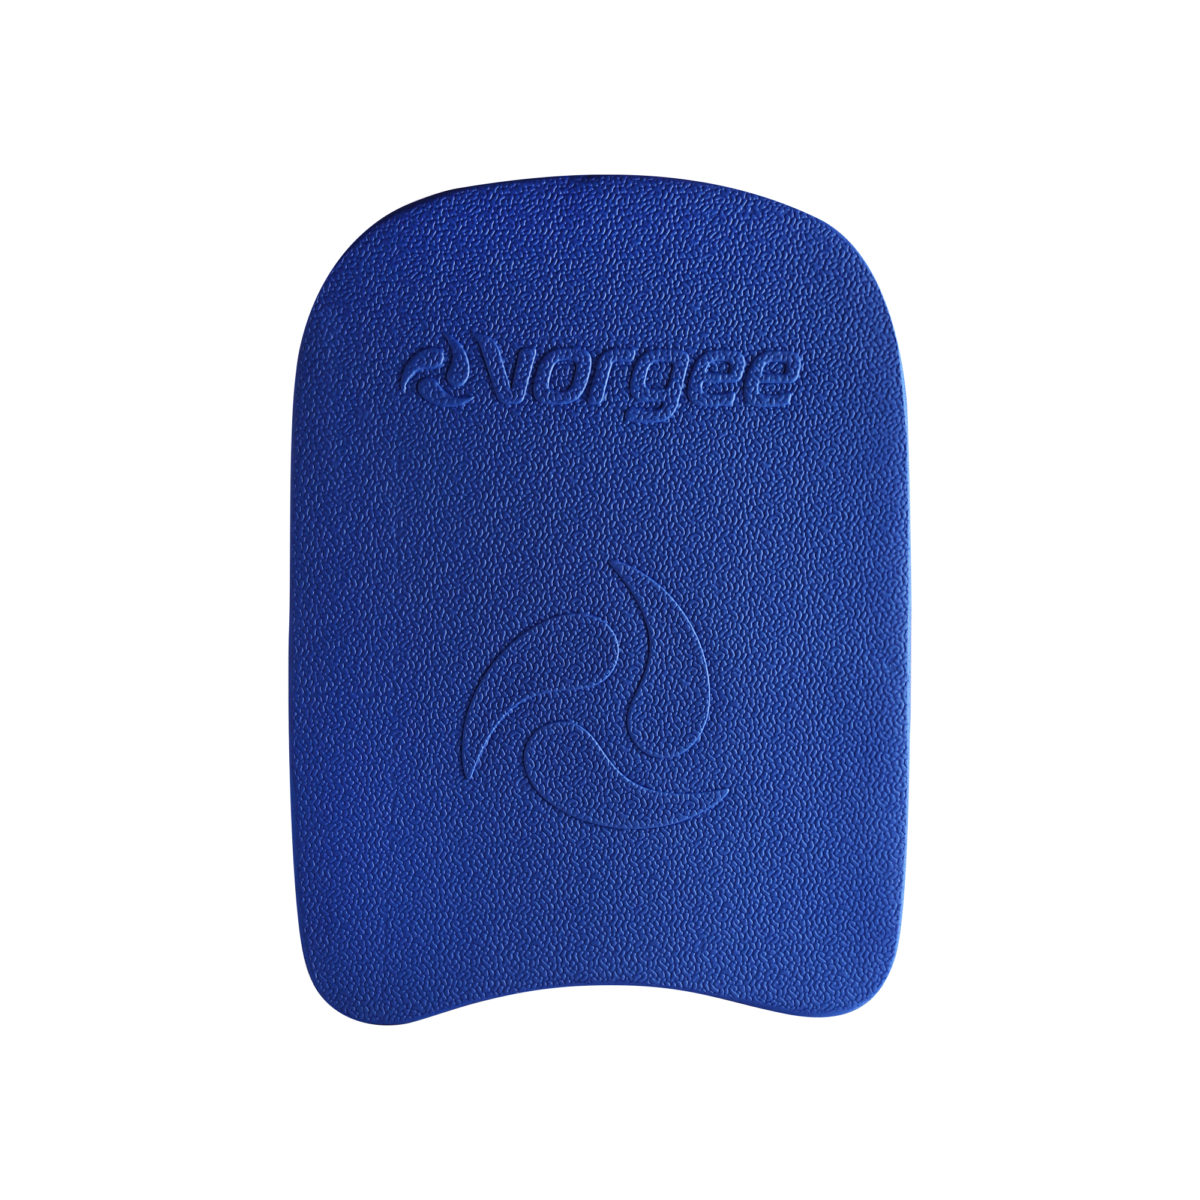 Medium Kickboard - blue